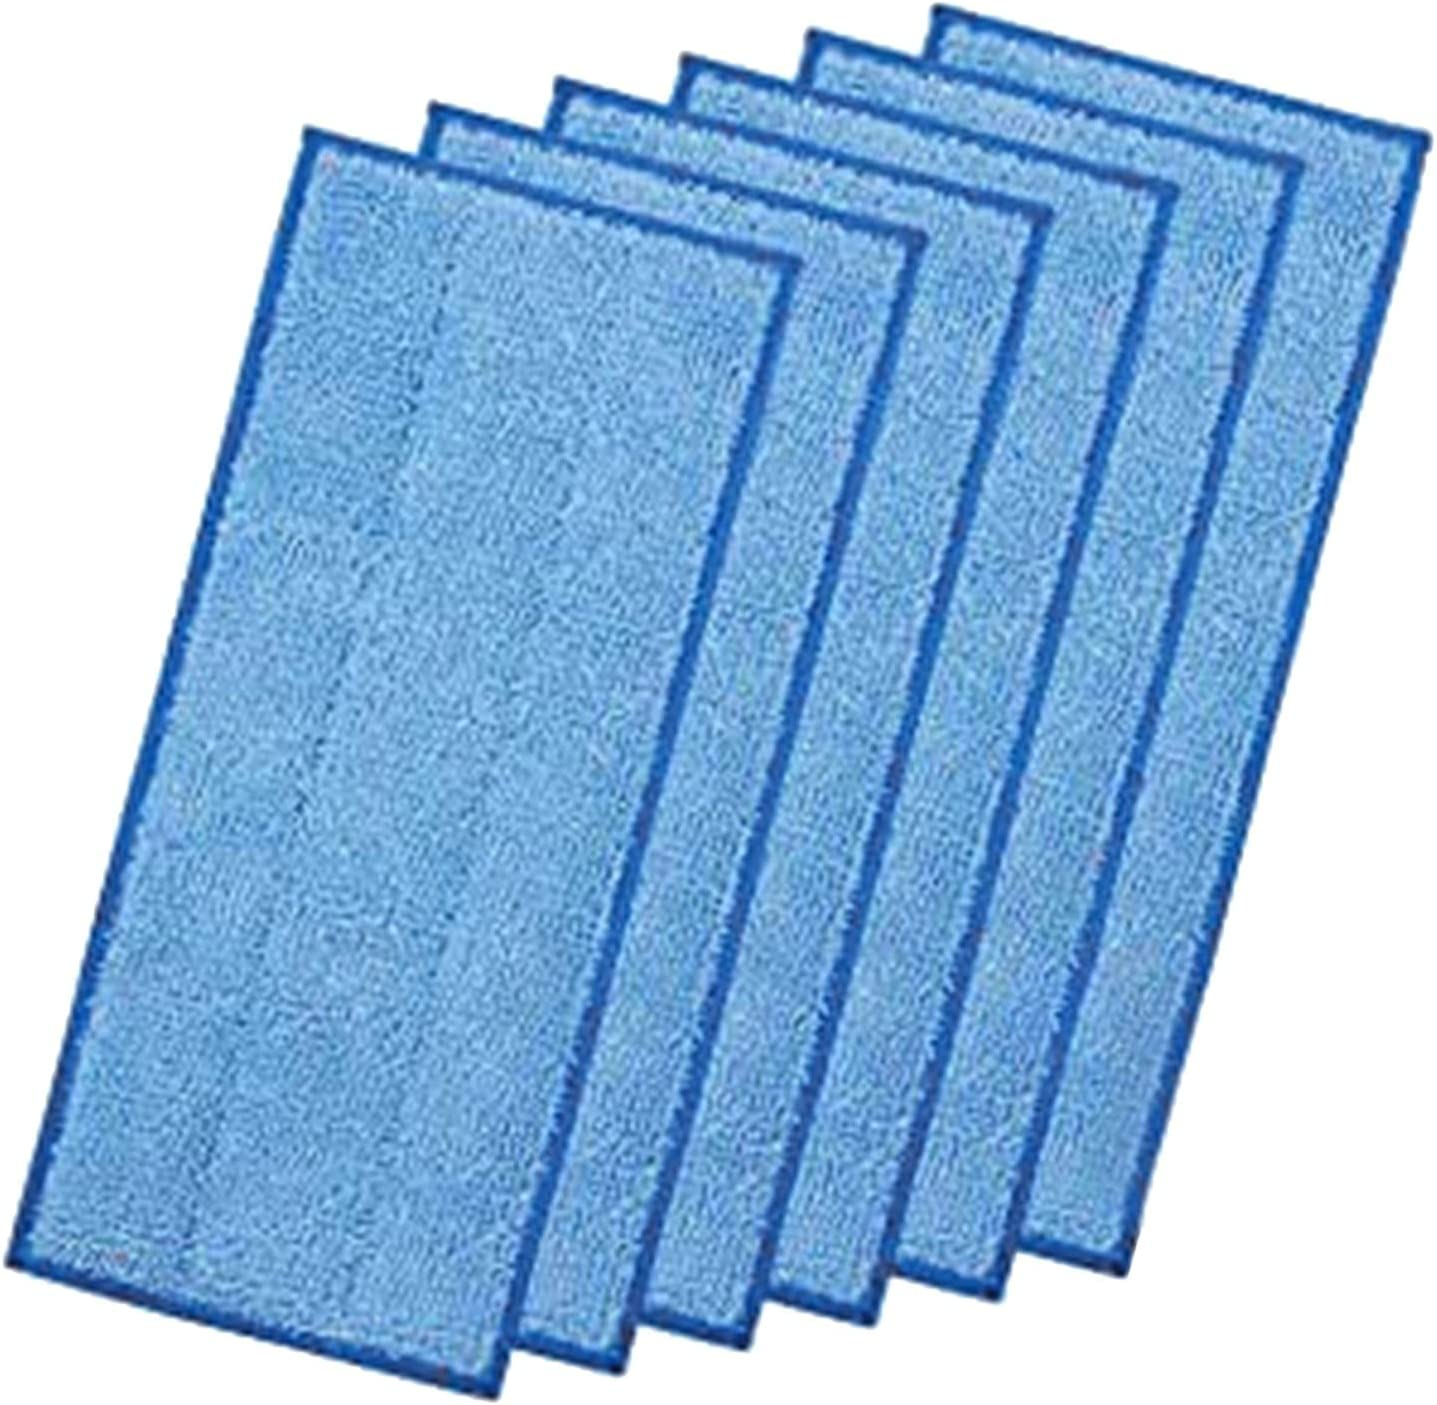 6pcs NEW Reusable Mop Cloth Wipes Blue Par Refill Wood for 2021 autumn and winter new